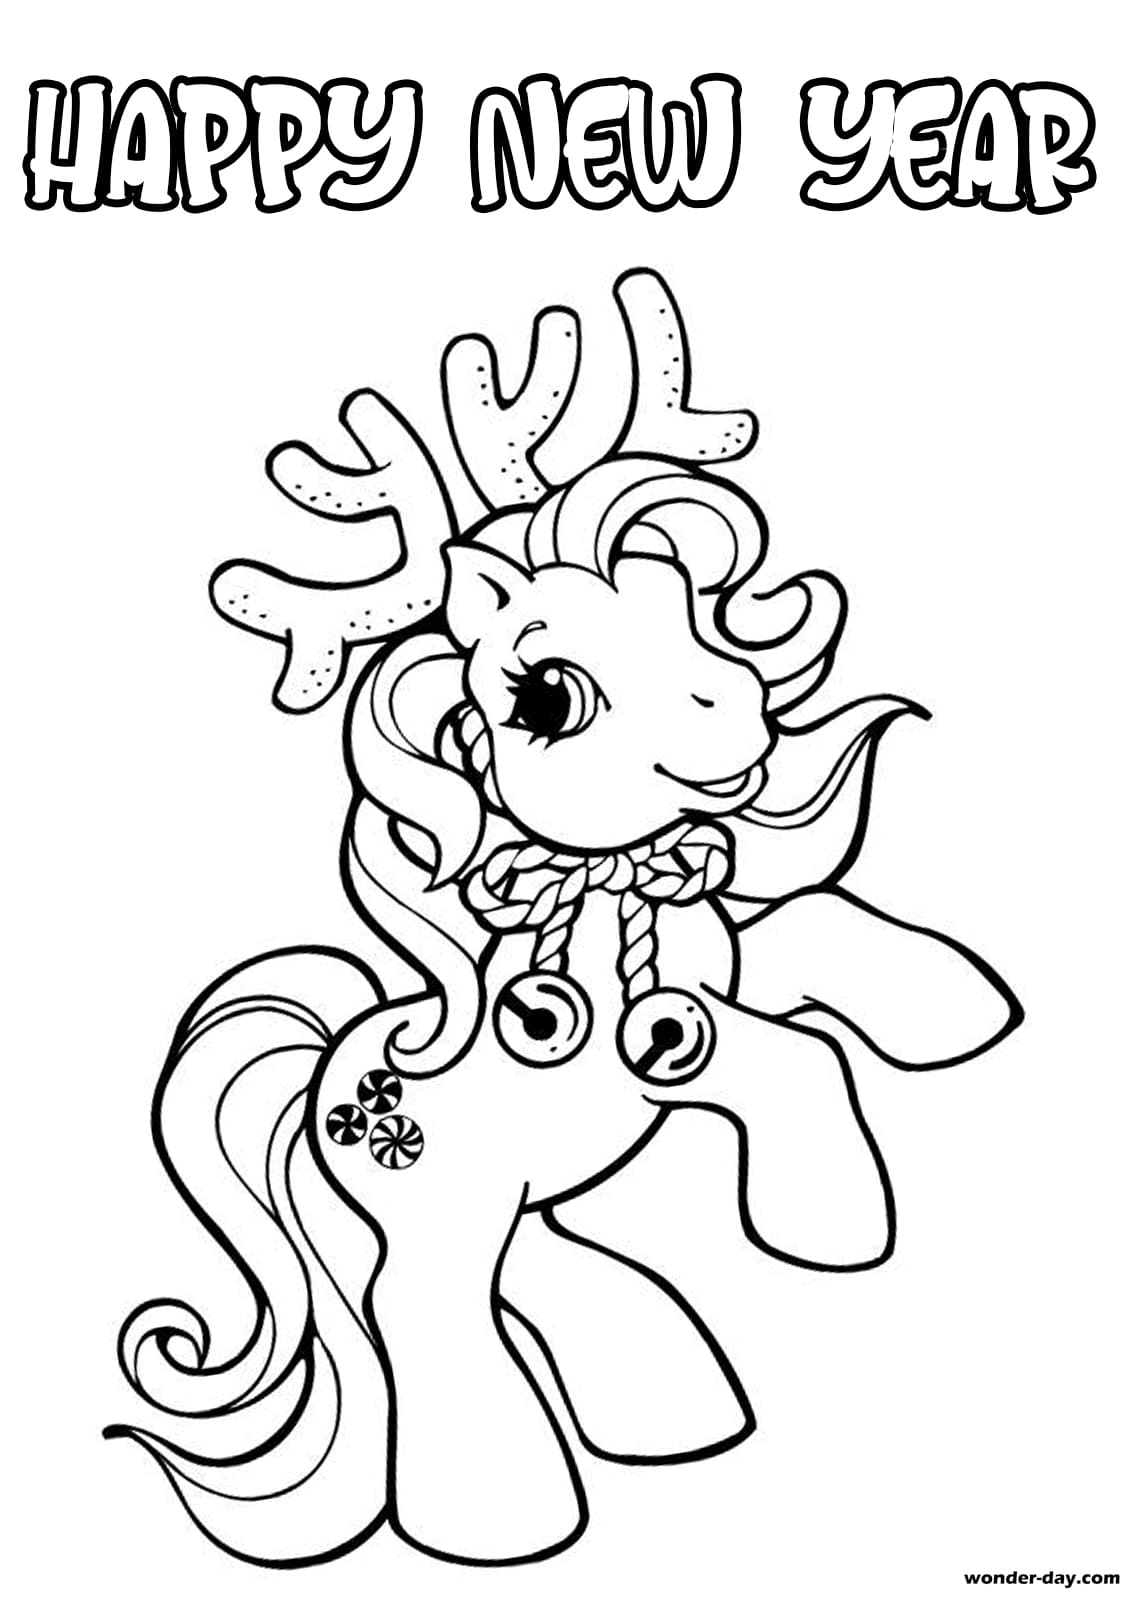 Happy New Year Coloring Pages Print For Free Wonder Day